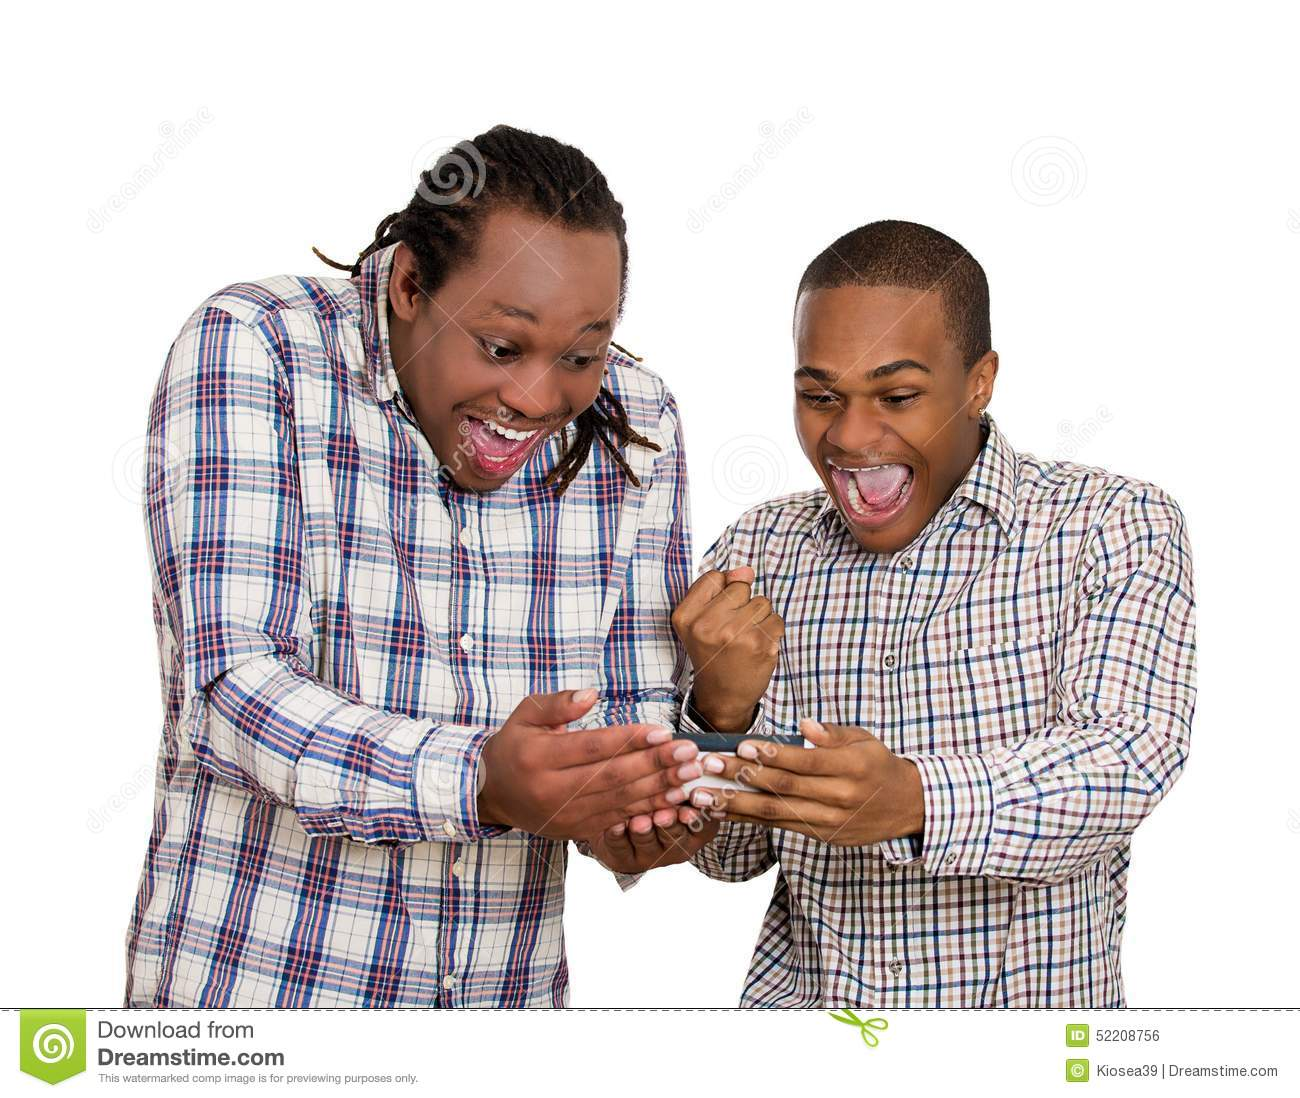 Two men looking excited, watching football game on smartphone